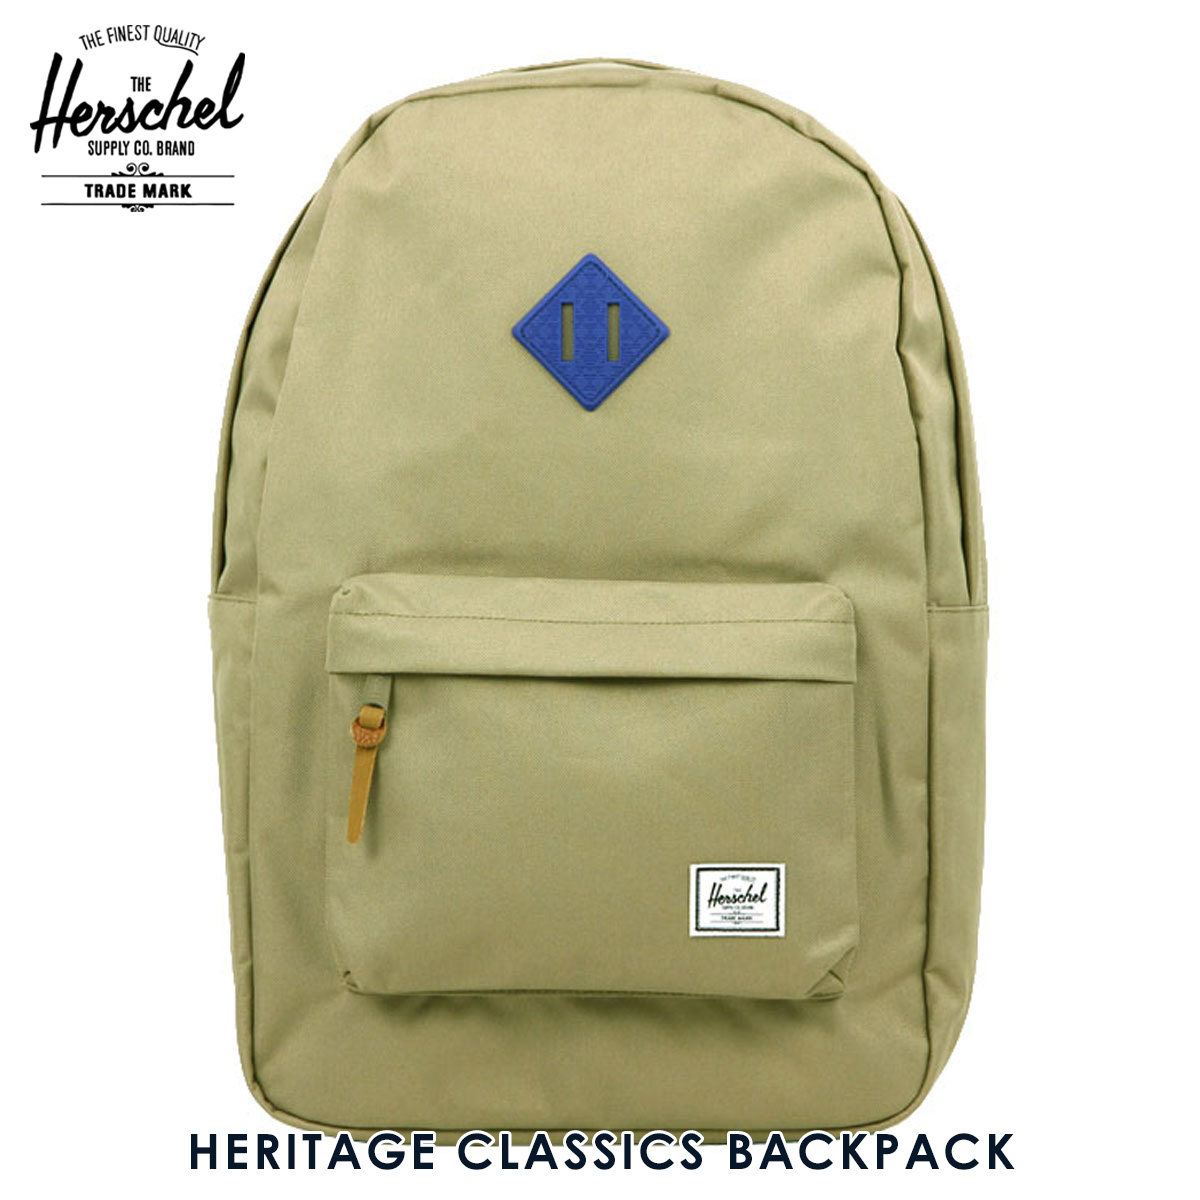 88f8ea0c8fa Herschel supply Herschel Supply regular sale shop bag rucksack BACKPACK  CLASSICS 10007-01257-OS HERITAGE BRINDLE COBALT NATIVE RUBBR 20P03Dec16